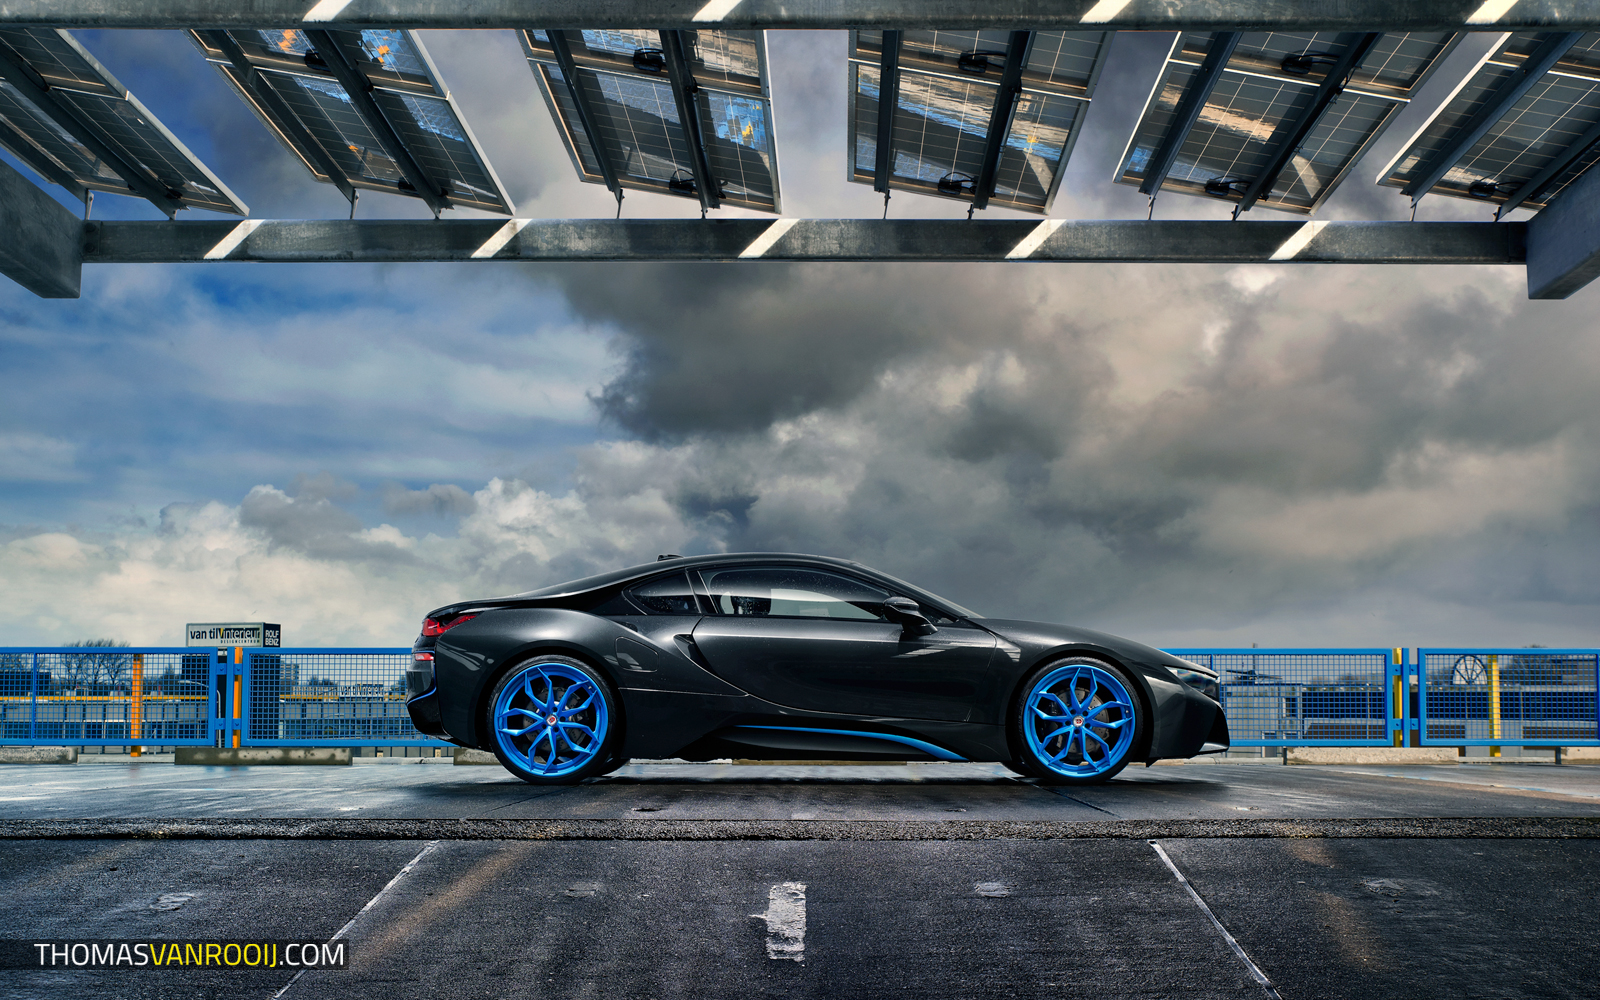 2_Thomas van Rooij Photography Fotografie BMW i8